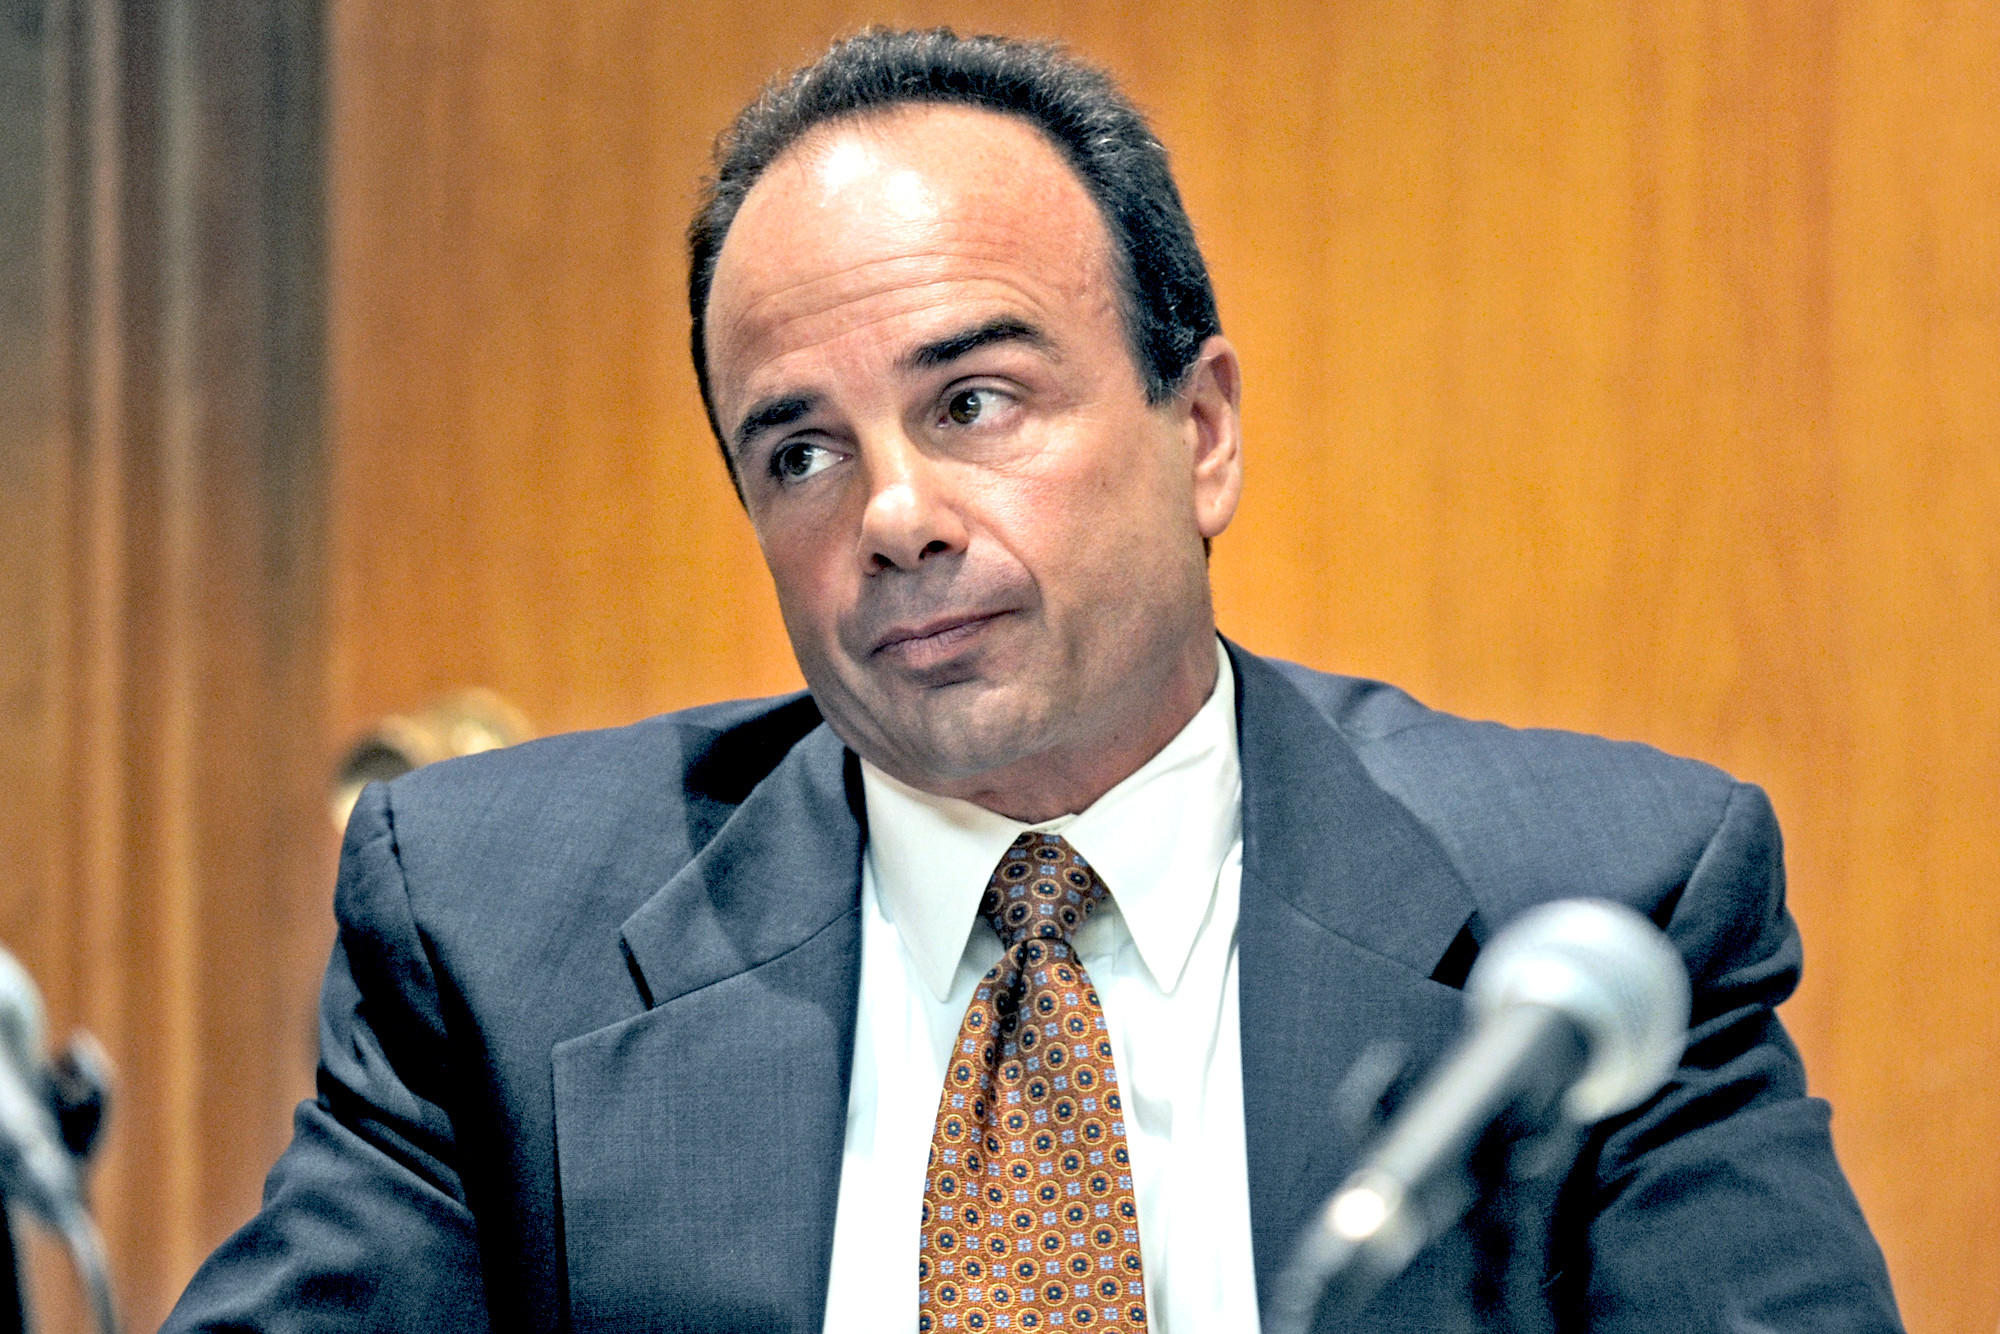 Former Bridgeport Mayor Joseph Ganim in Superior Court, in Bridgeport in 2012.